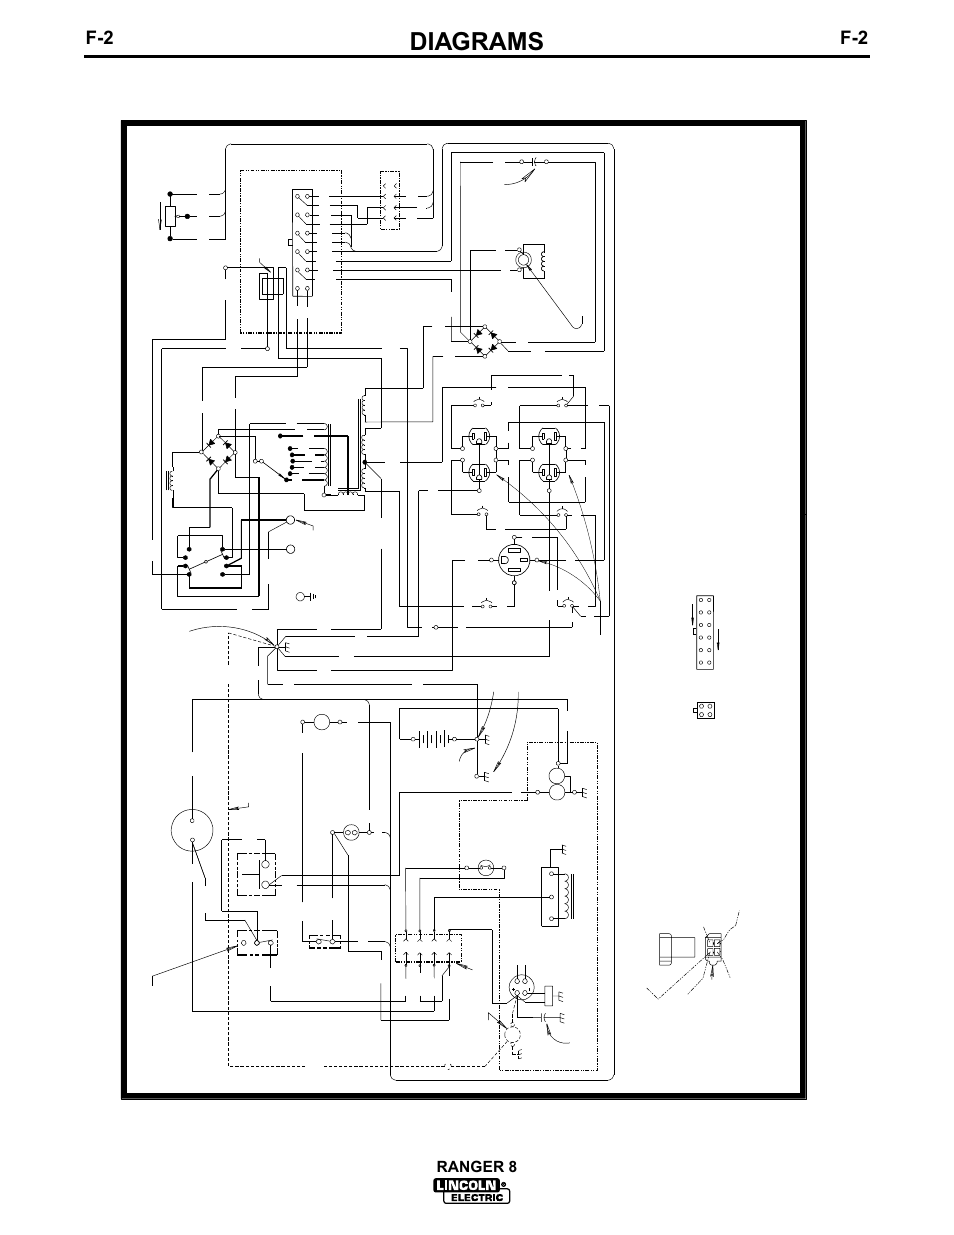 diagrams  ranger 8  electrical symbols per e1537